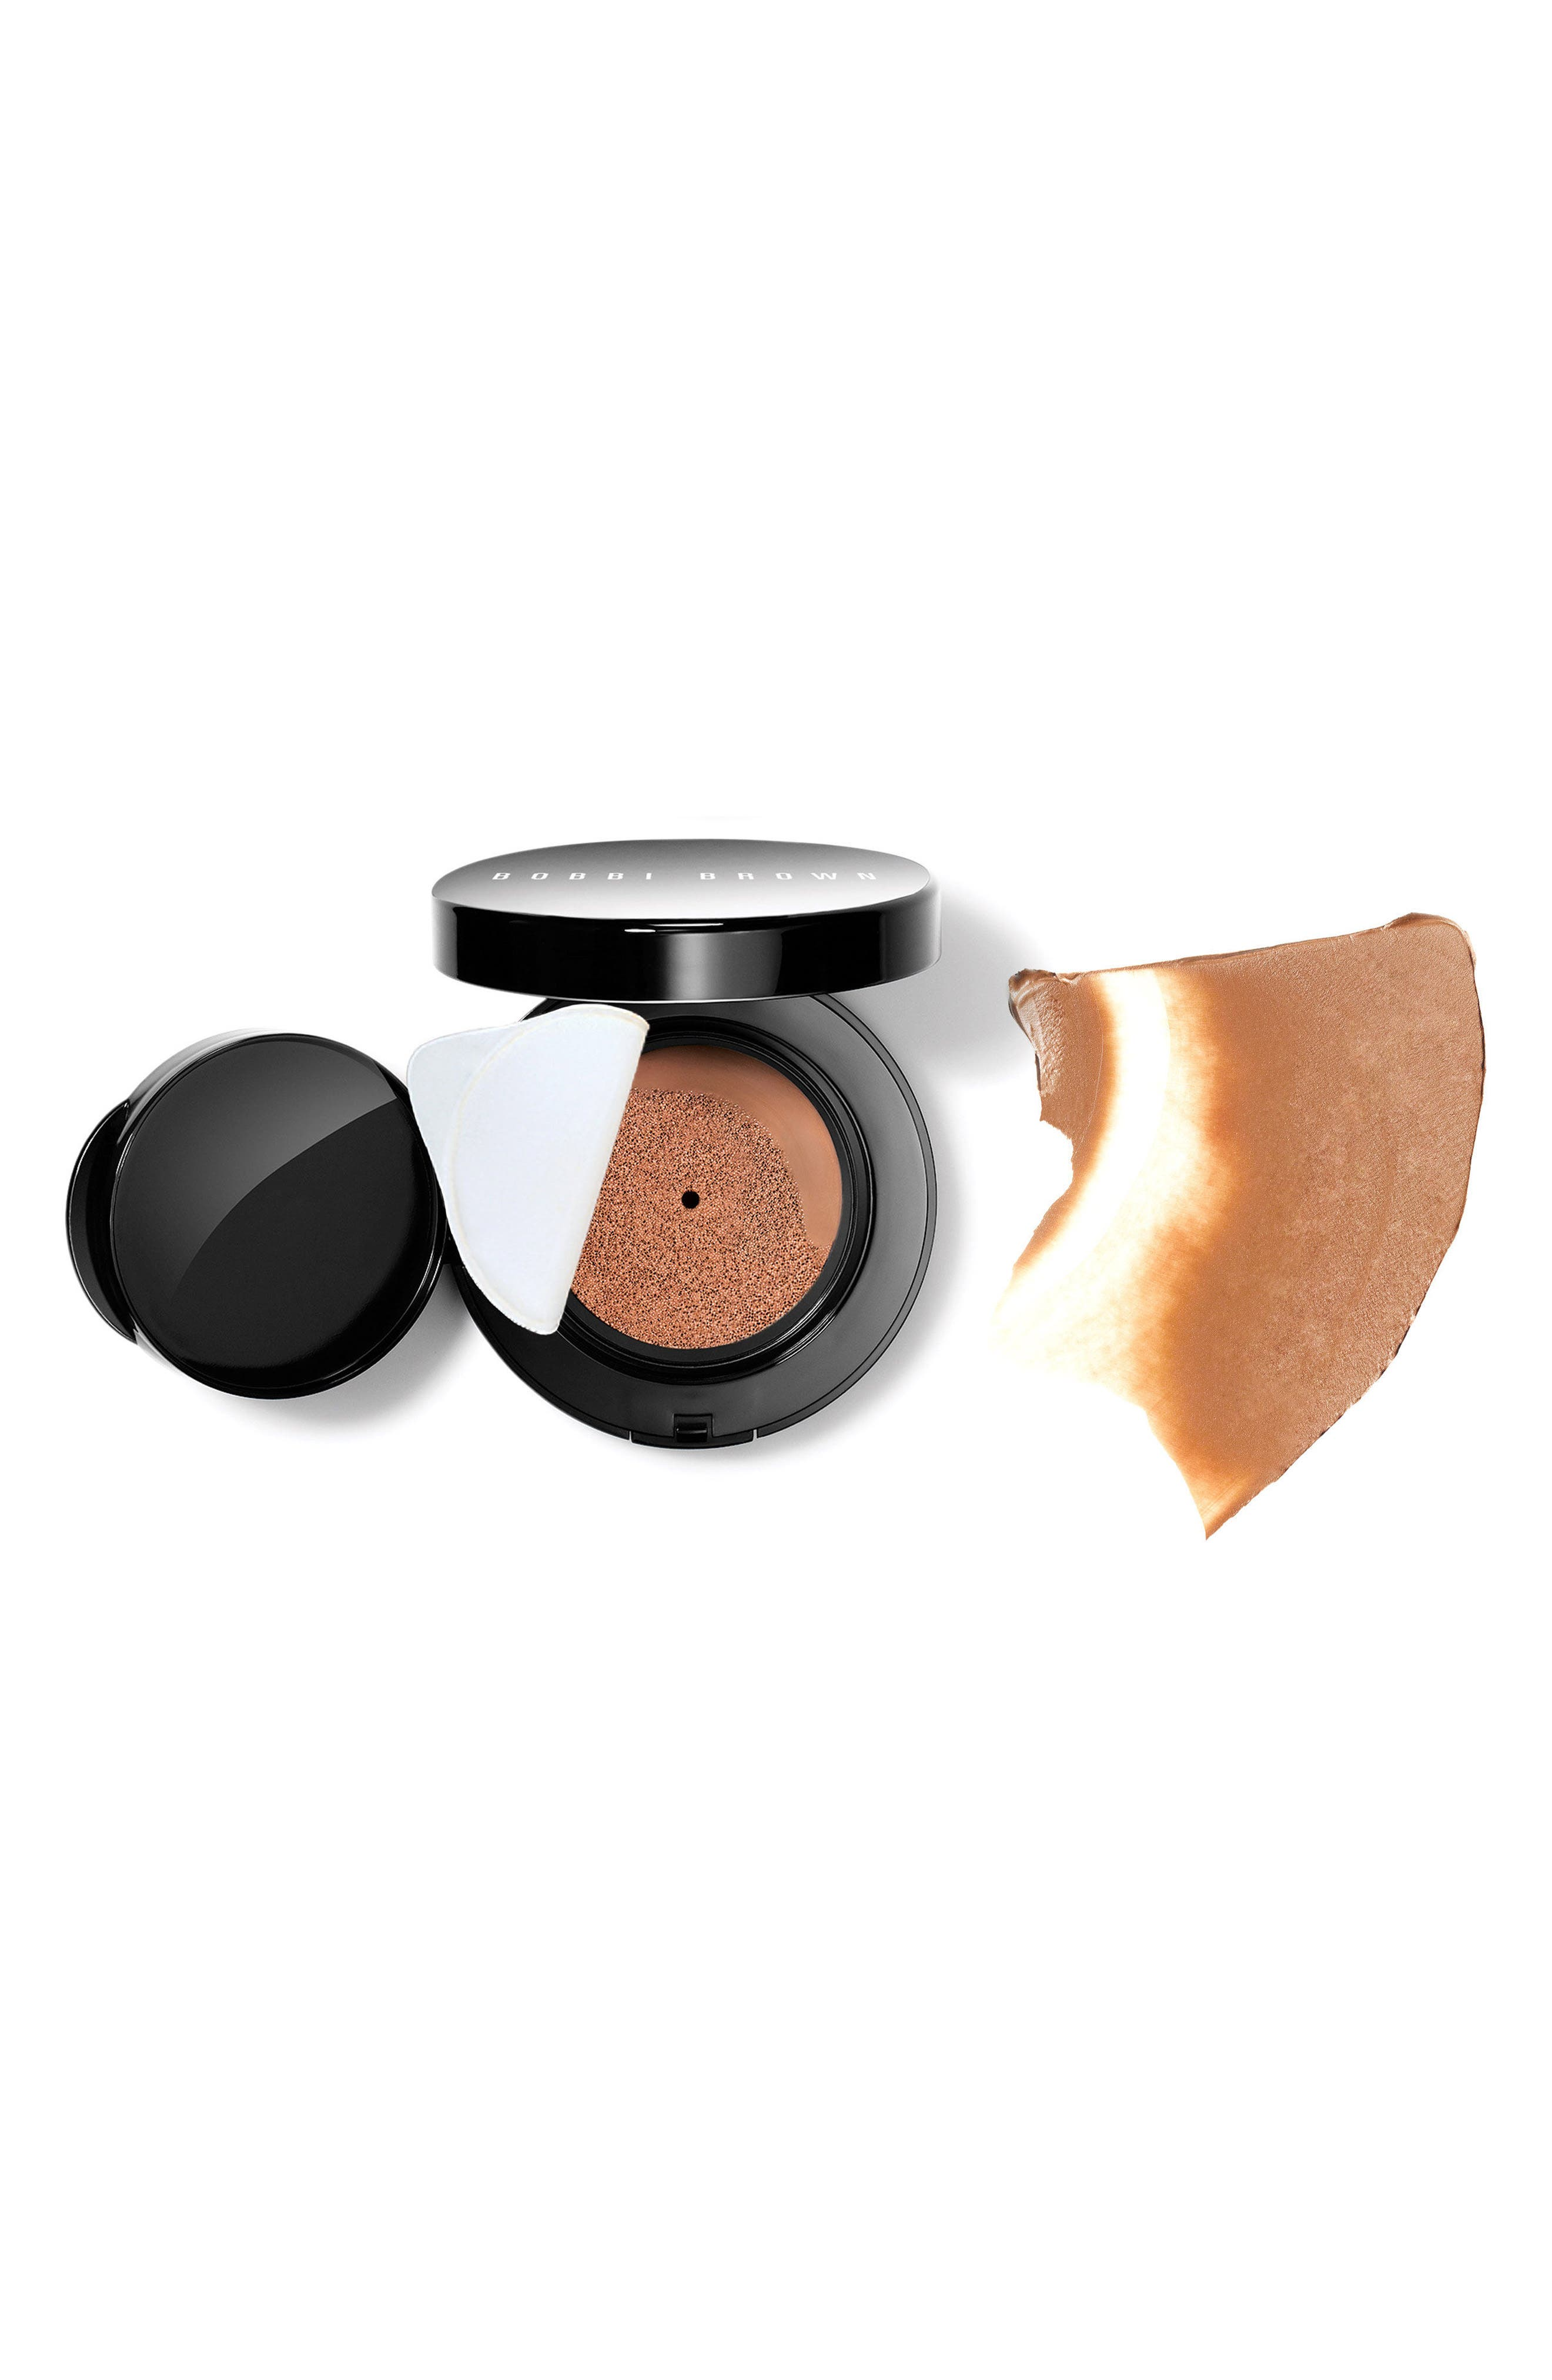 Skin Foundation Cushion Compact SPF 35,                             Alternate thumbnail 4, color,                             200